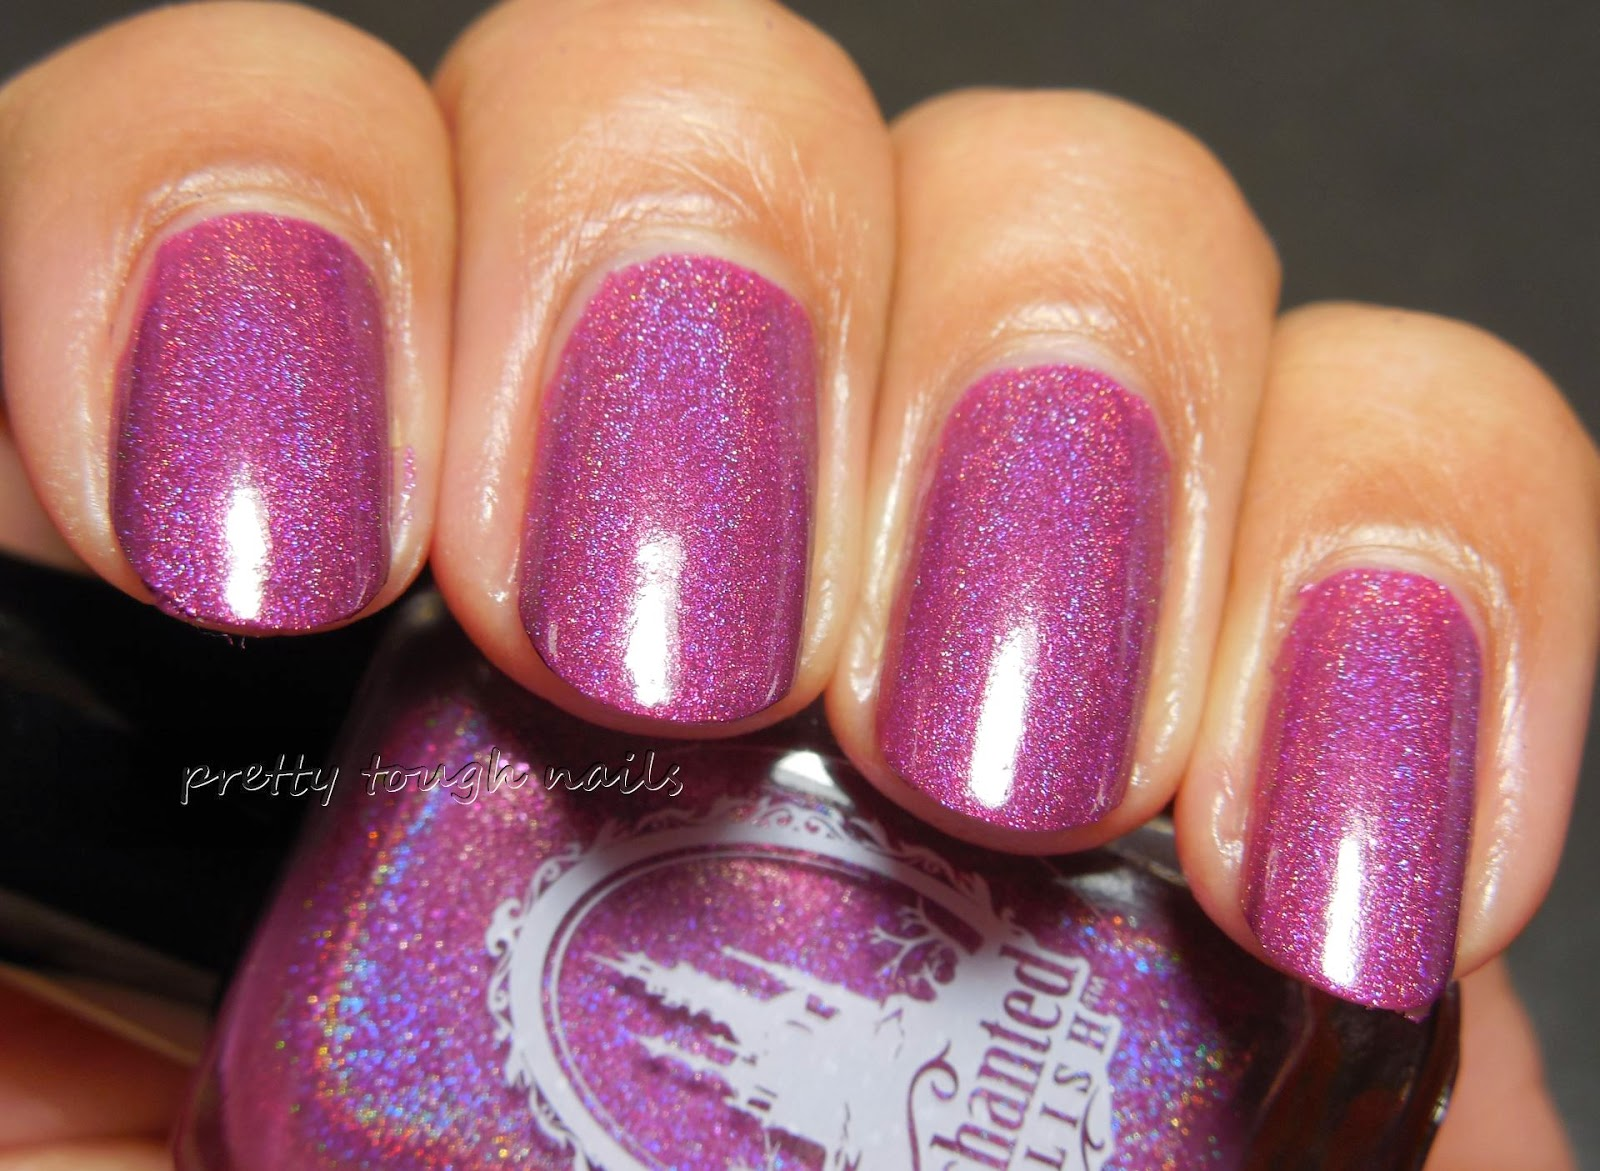 Enchanted Polish February 2014